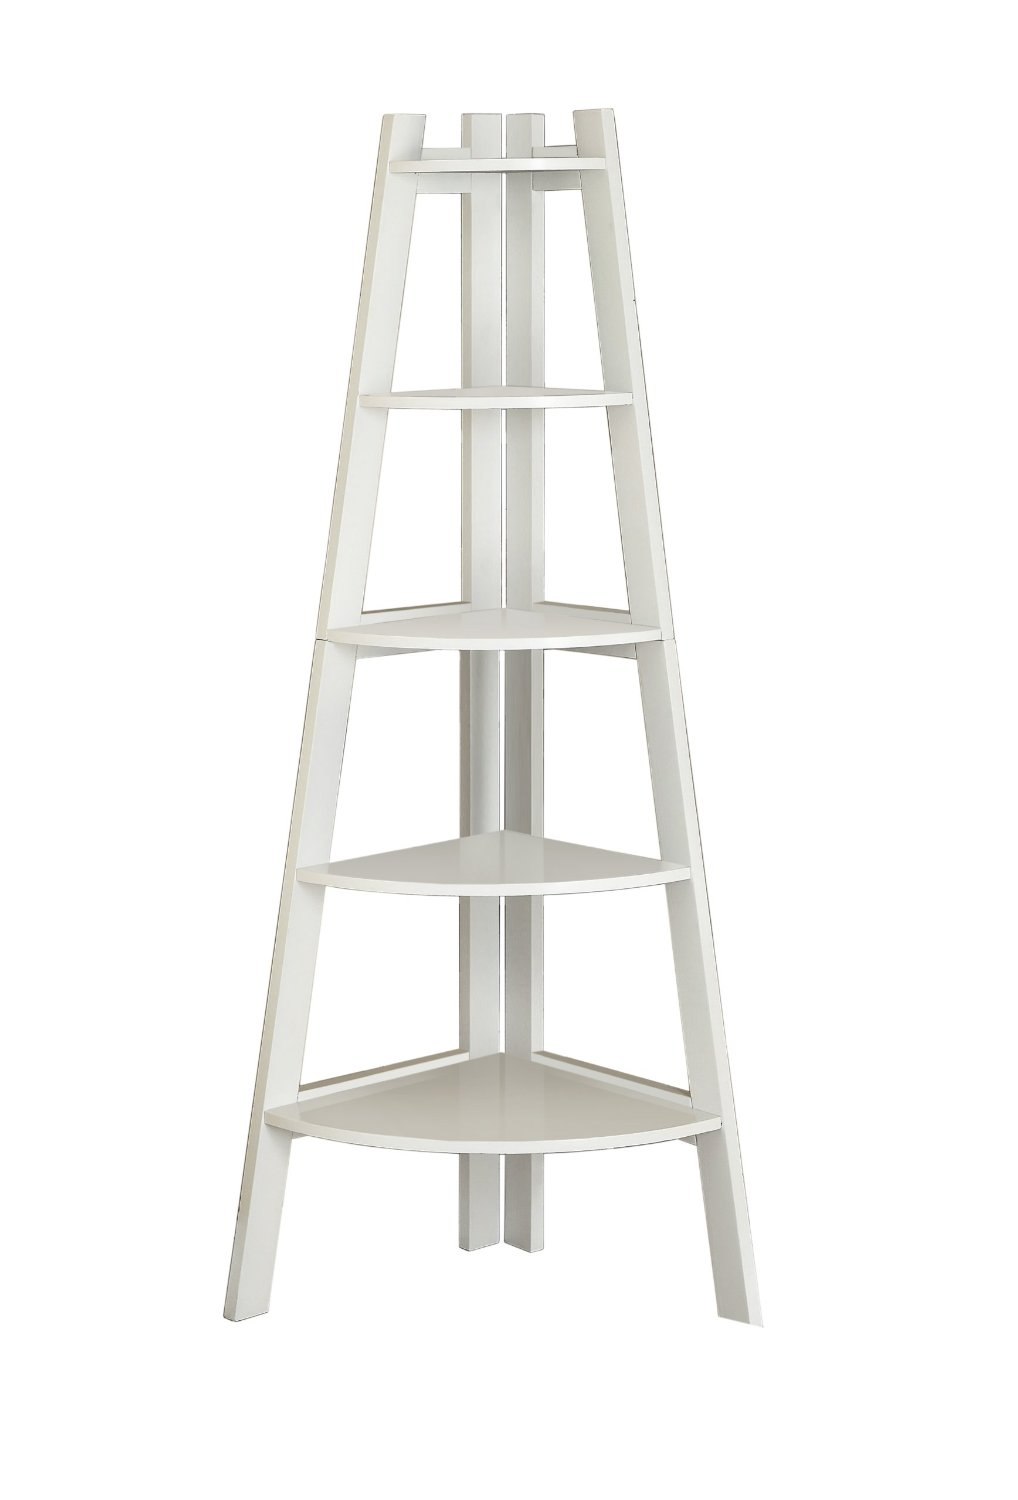 Top 12 Amazing Corner Ladder Shelves For Your Home/Office